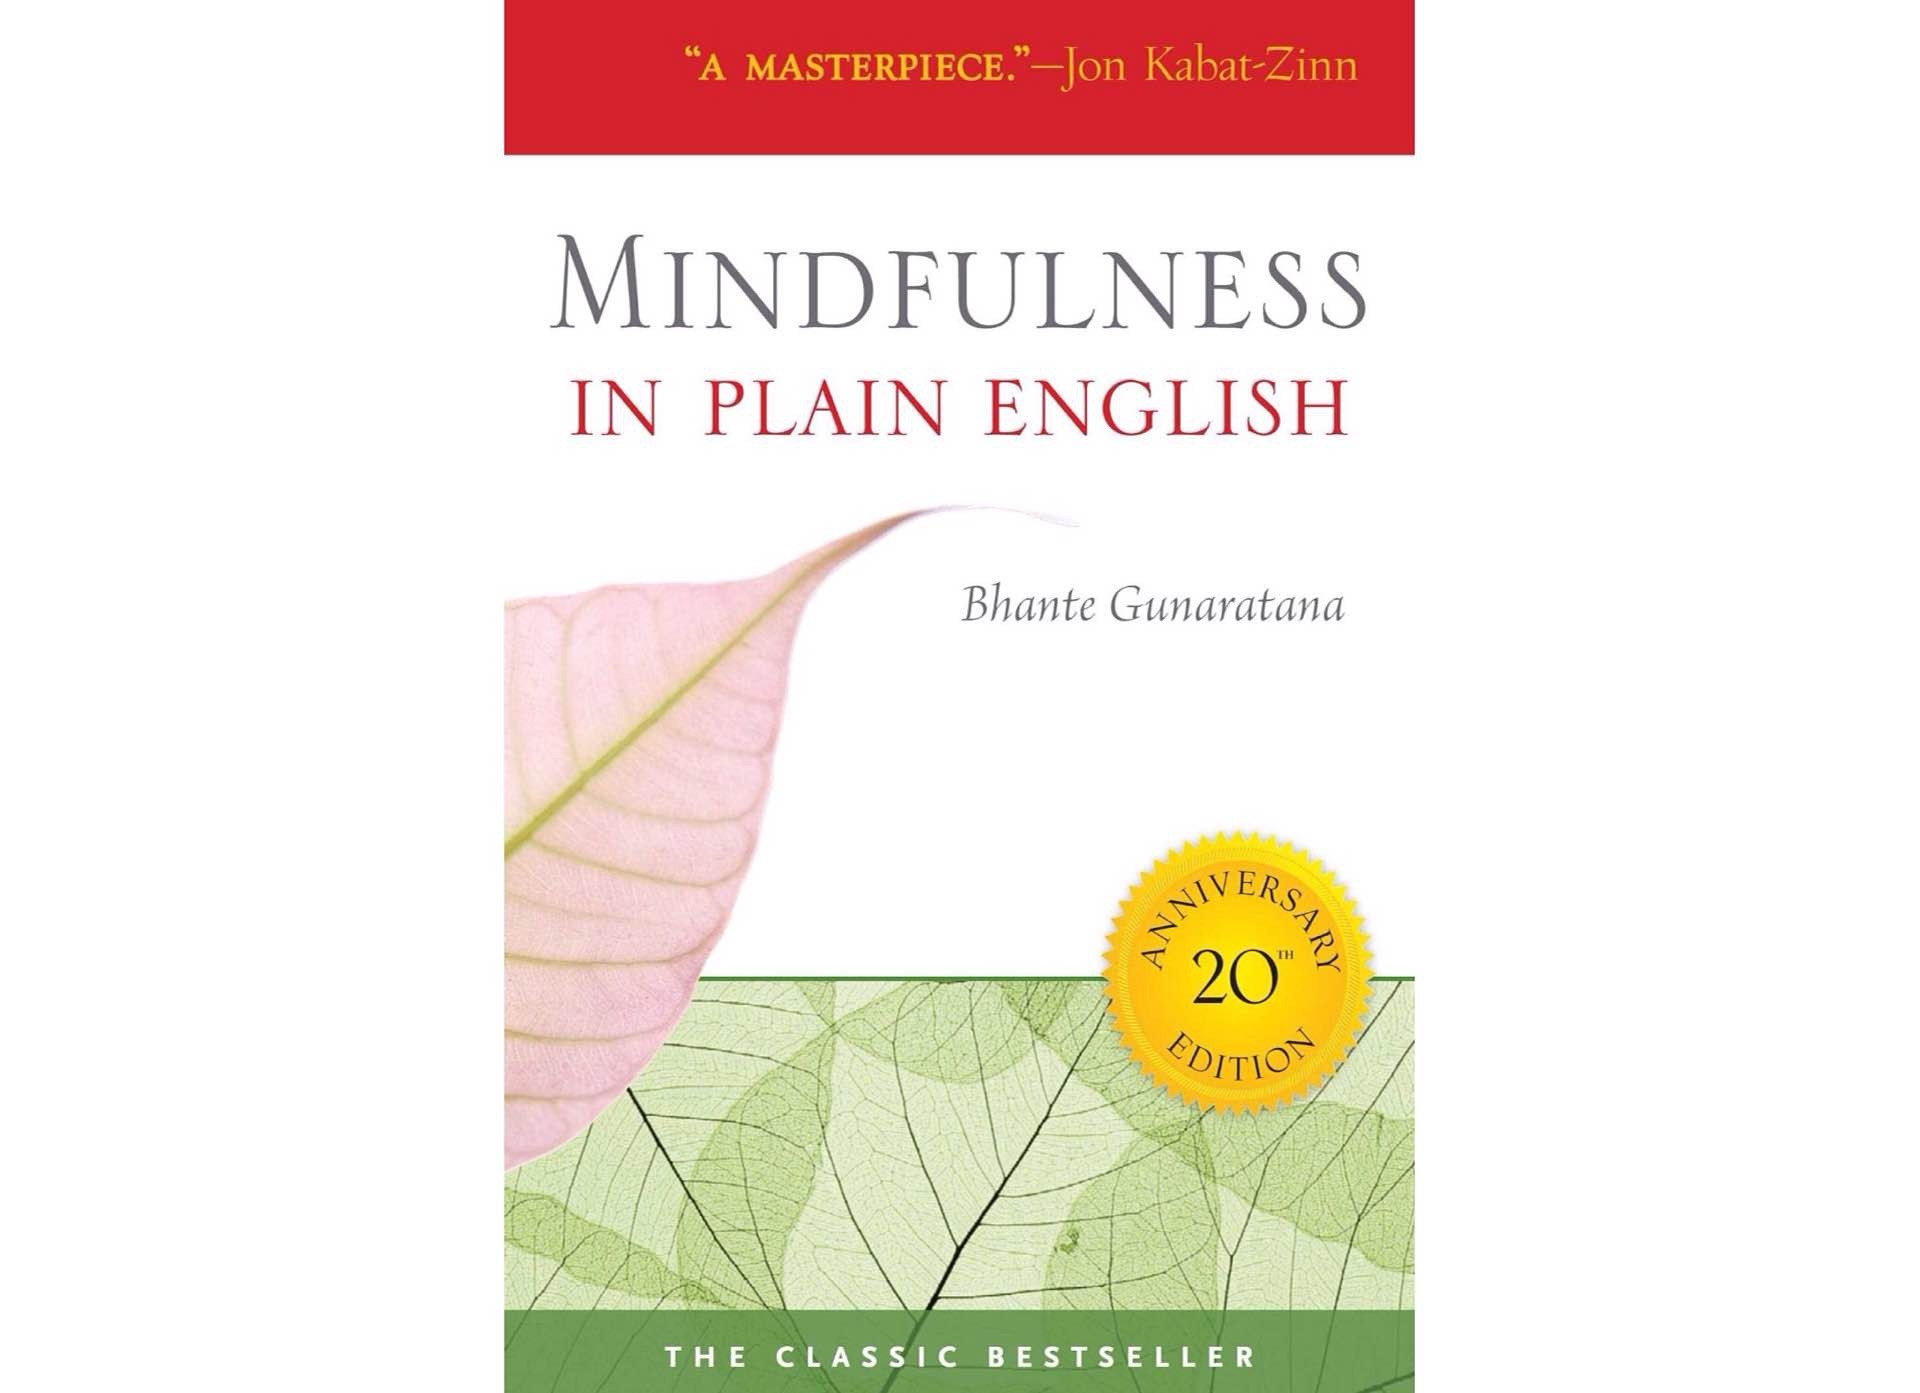 Mindfulness in Plain English by Bhante Gunaratana.